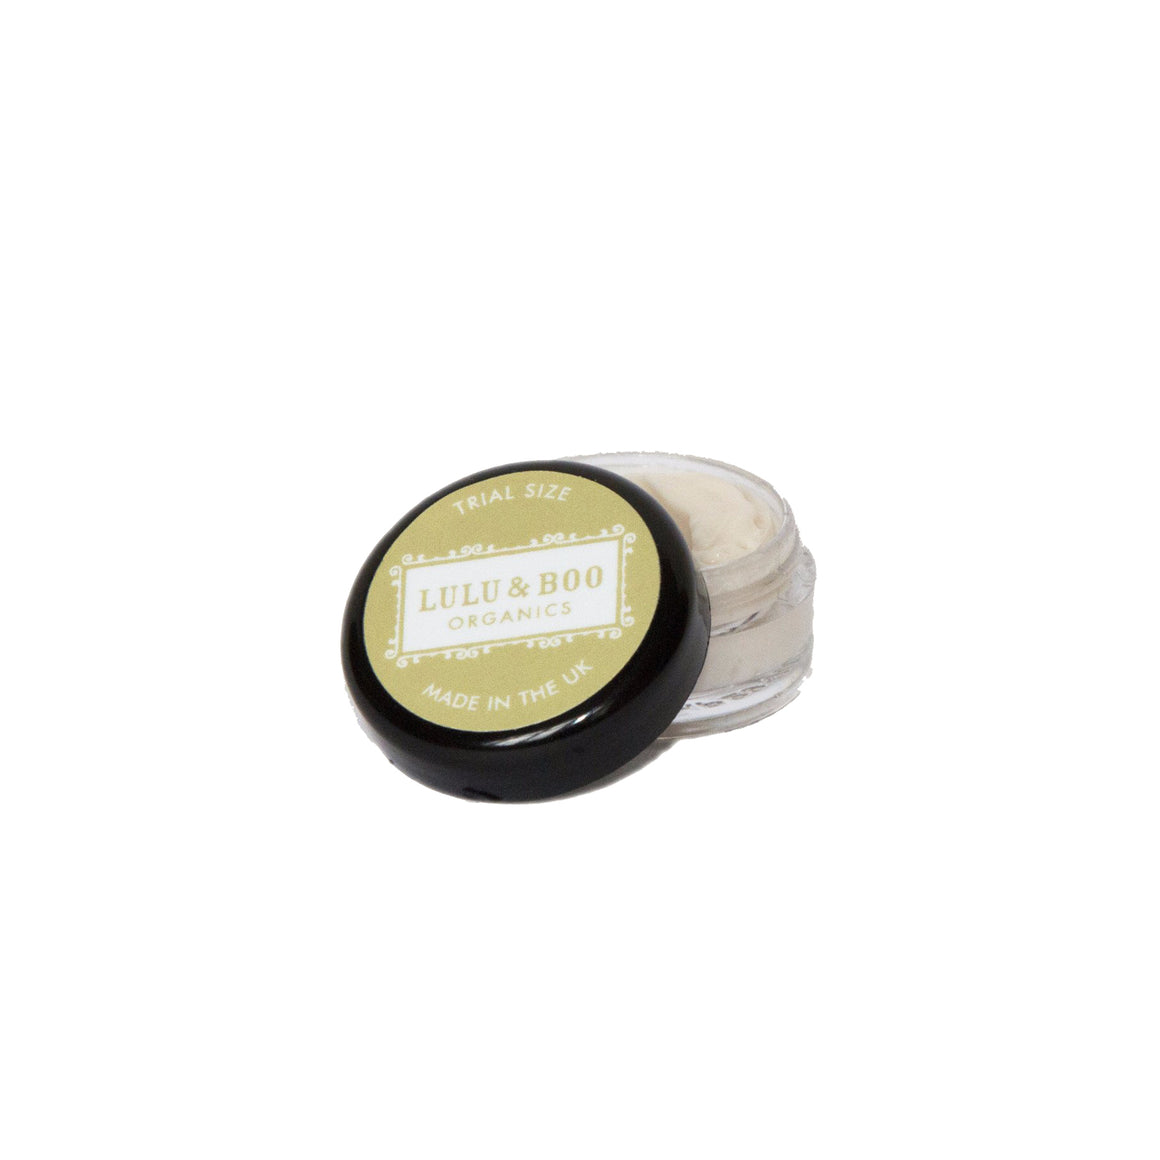 Linden Blossom Face Cream Sample